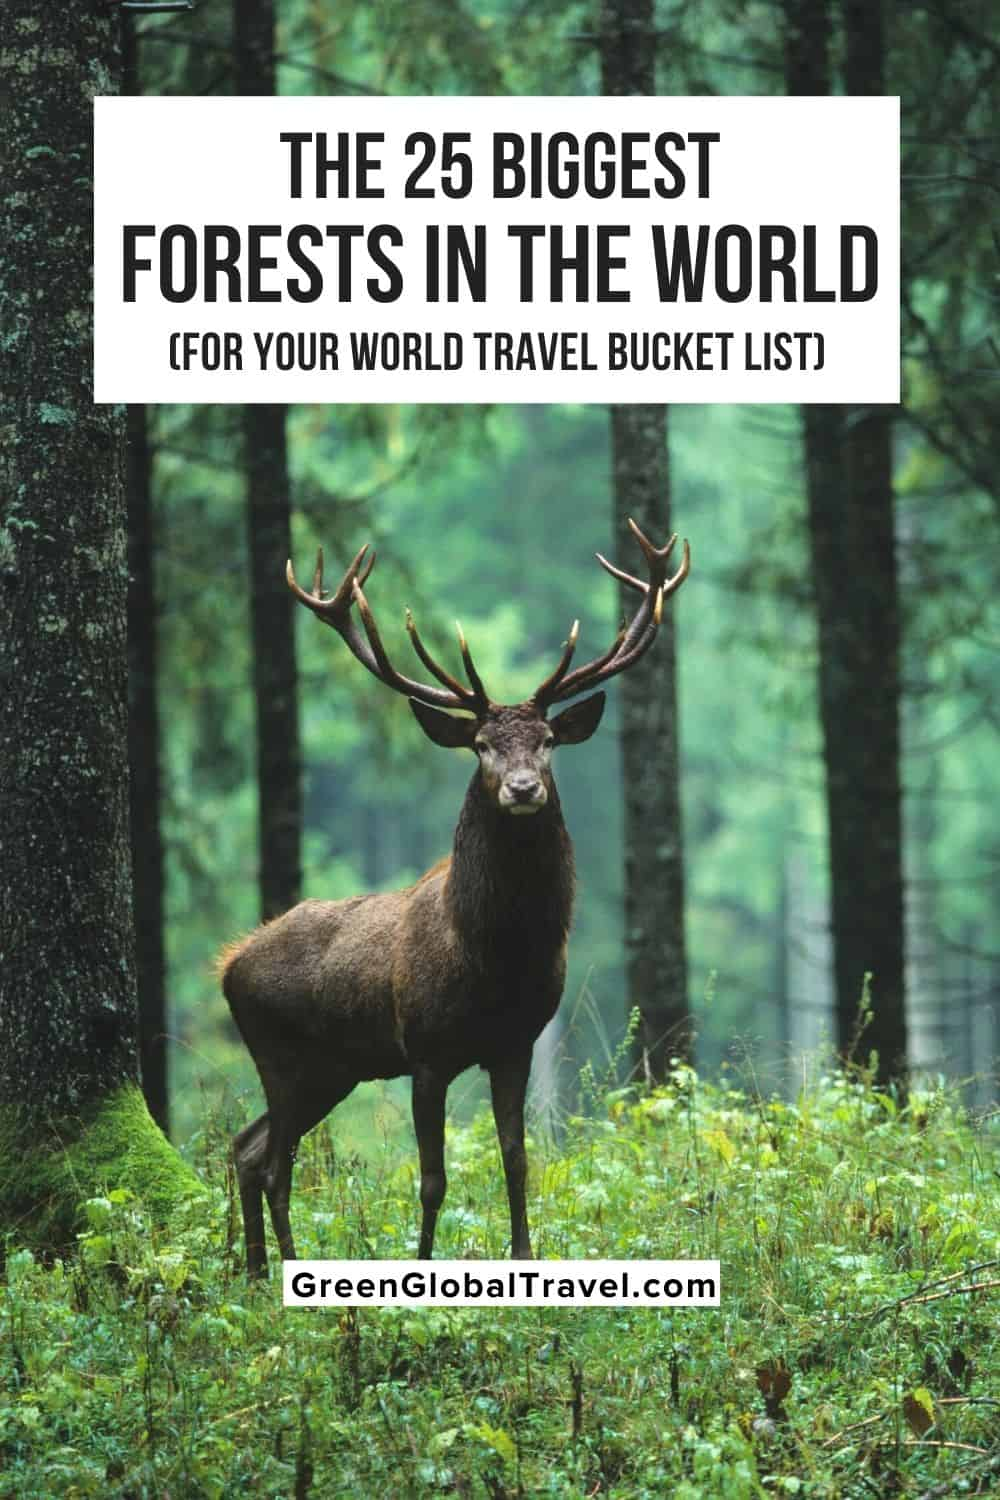 The 25 Biggest Forests (For Your World Travel Bucket List) including Forests in America, African Forests, Asian Forests, European Forests and more!